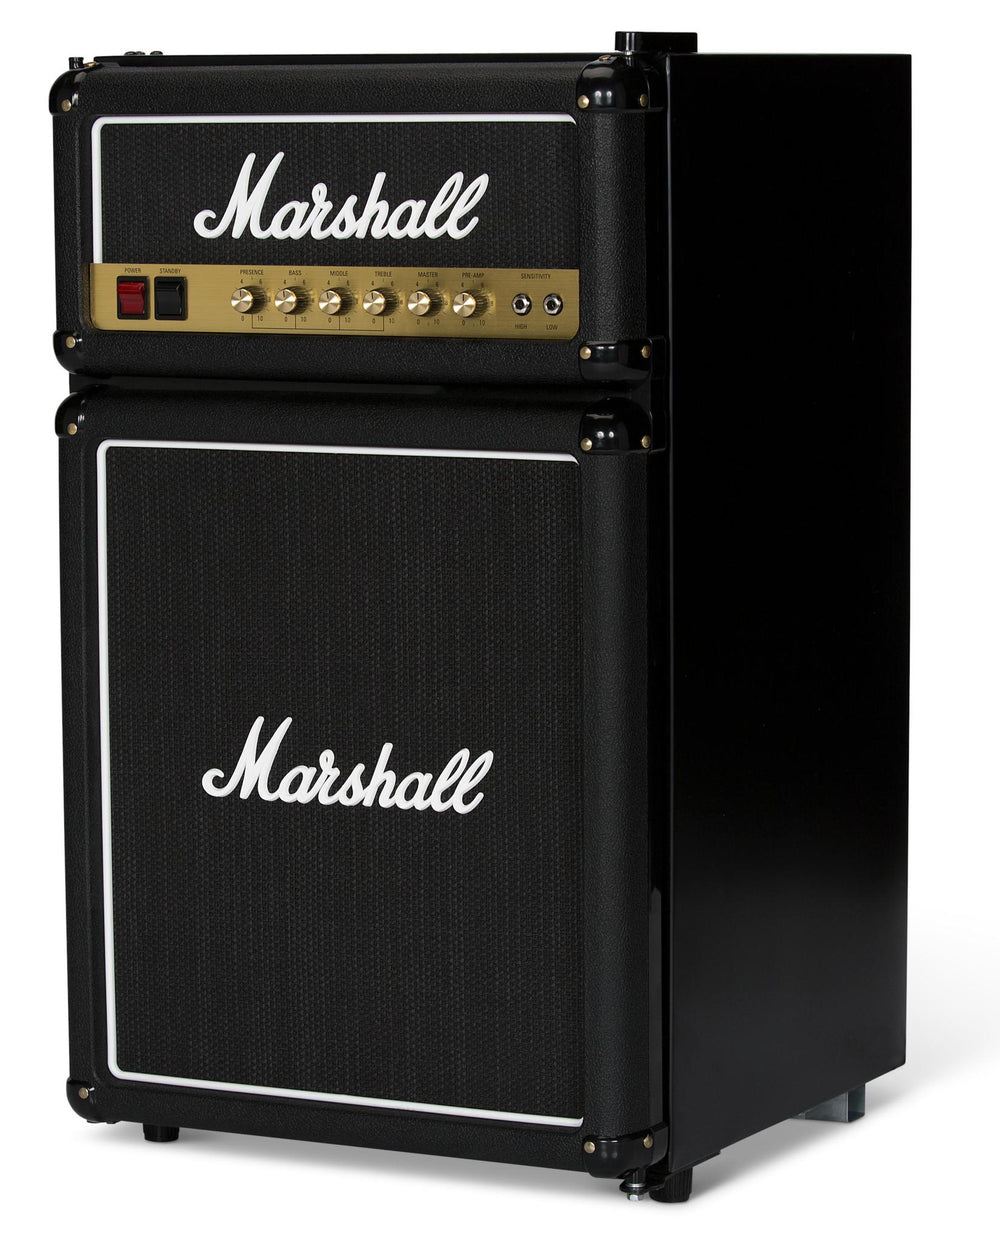 Marshall Fridge 3.2 - British Audio